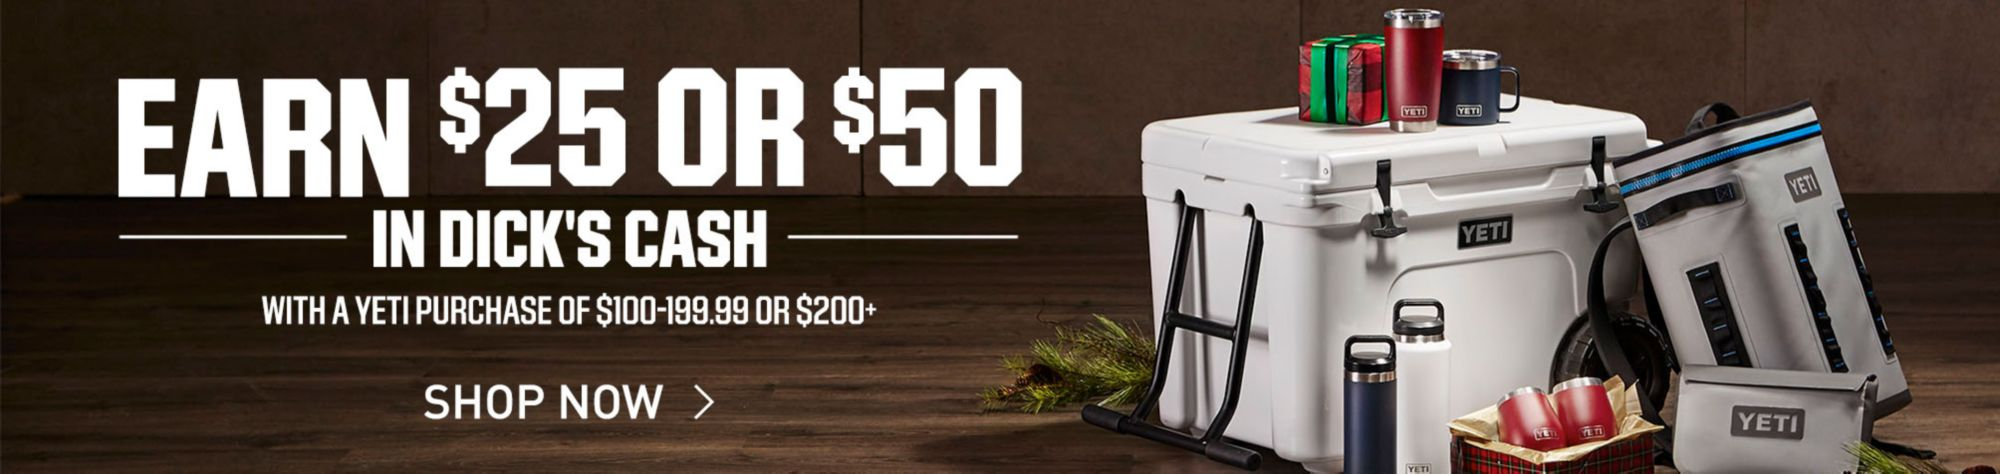 Earn $25 or $50 In DICK'S Cash With A Yeti Purchasef of $100-199.99 or $200+